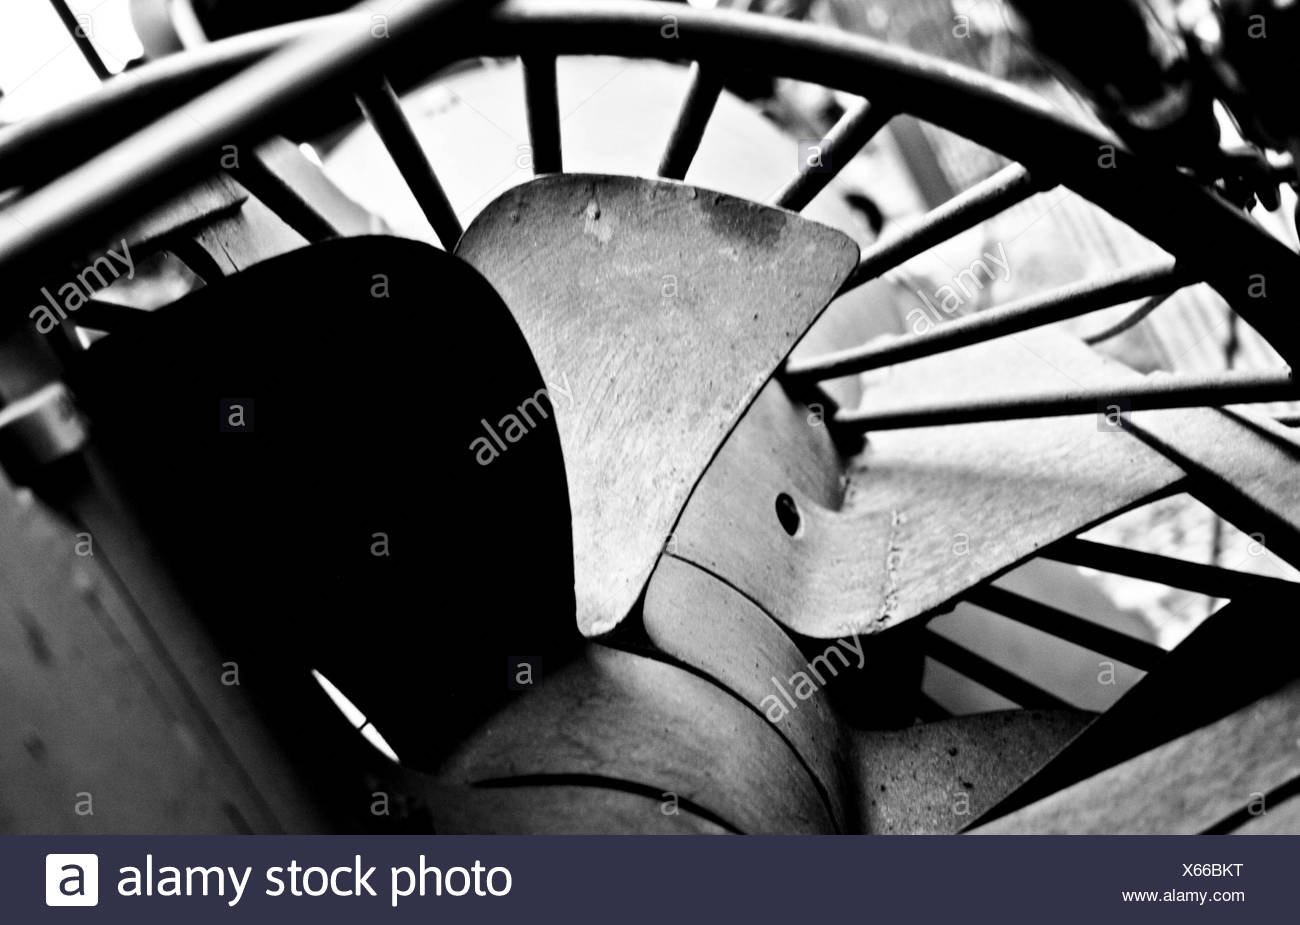 Exhaust Fan Stock Photos Amp Exhaust Fan Stock Images Alamy